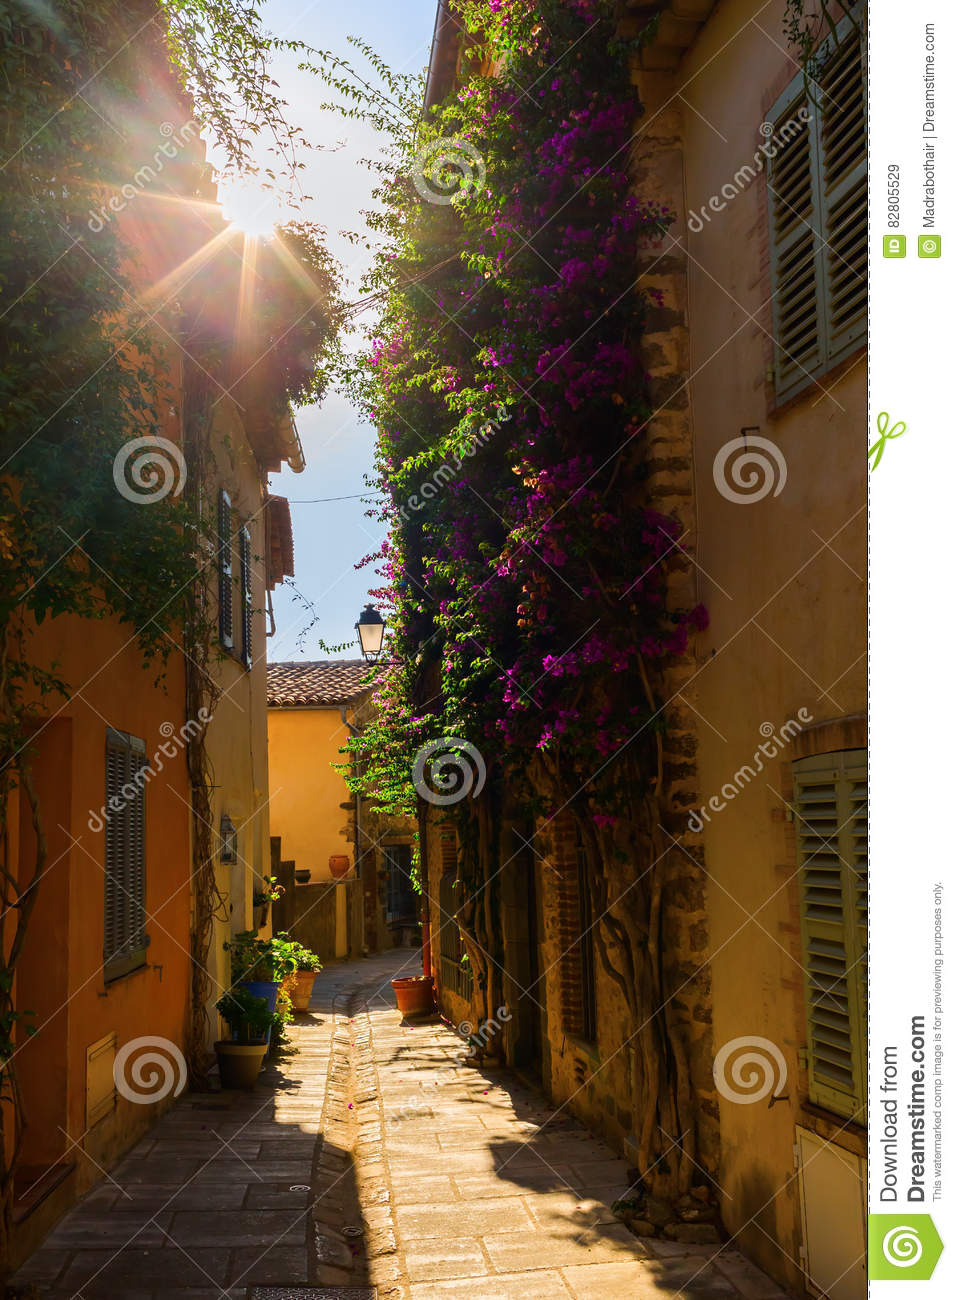 Alley in Grimaud, South France